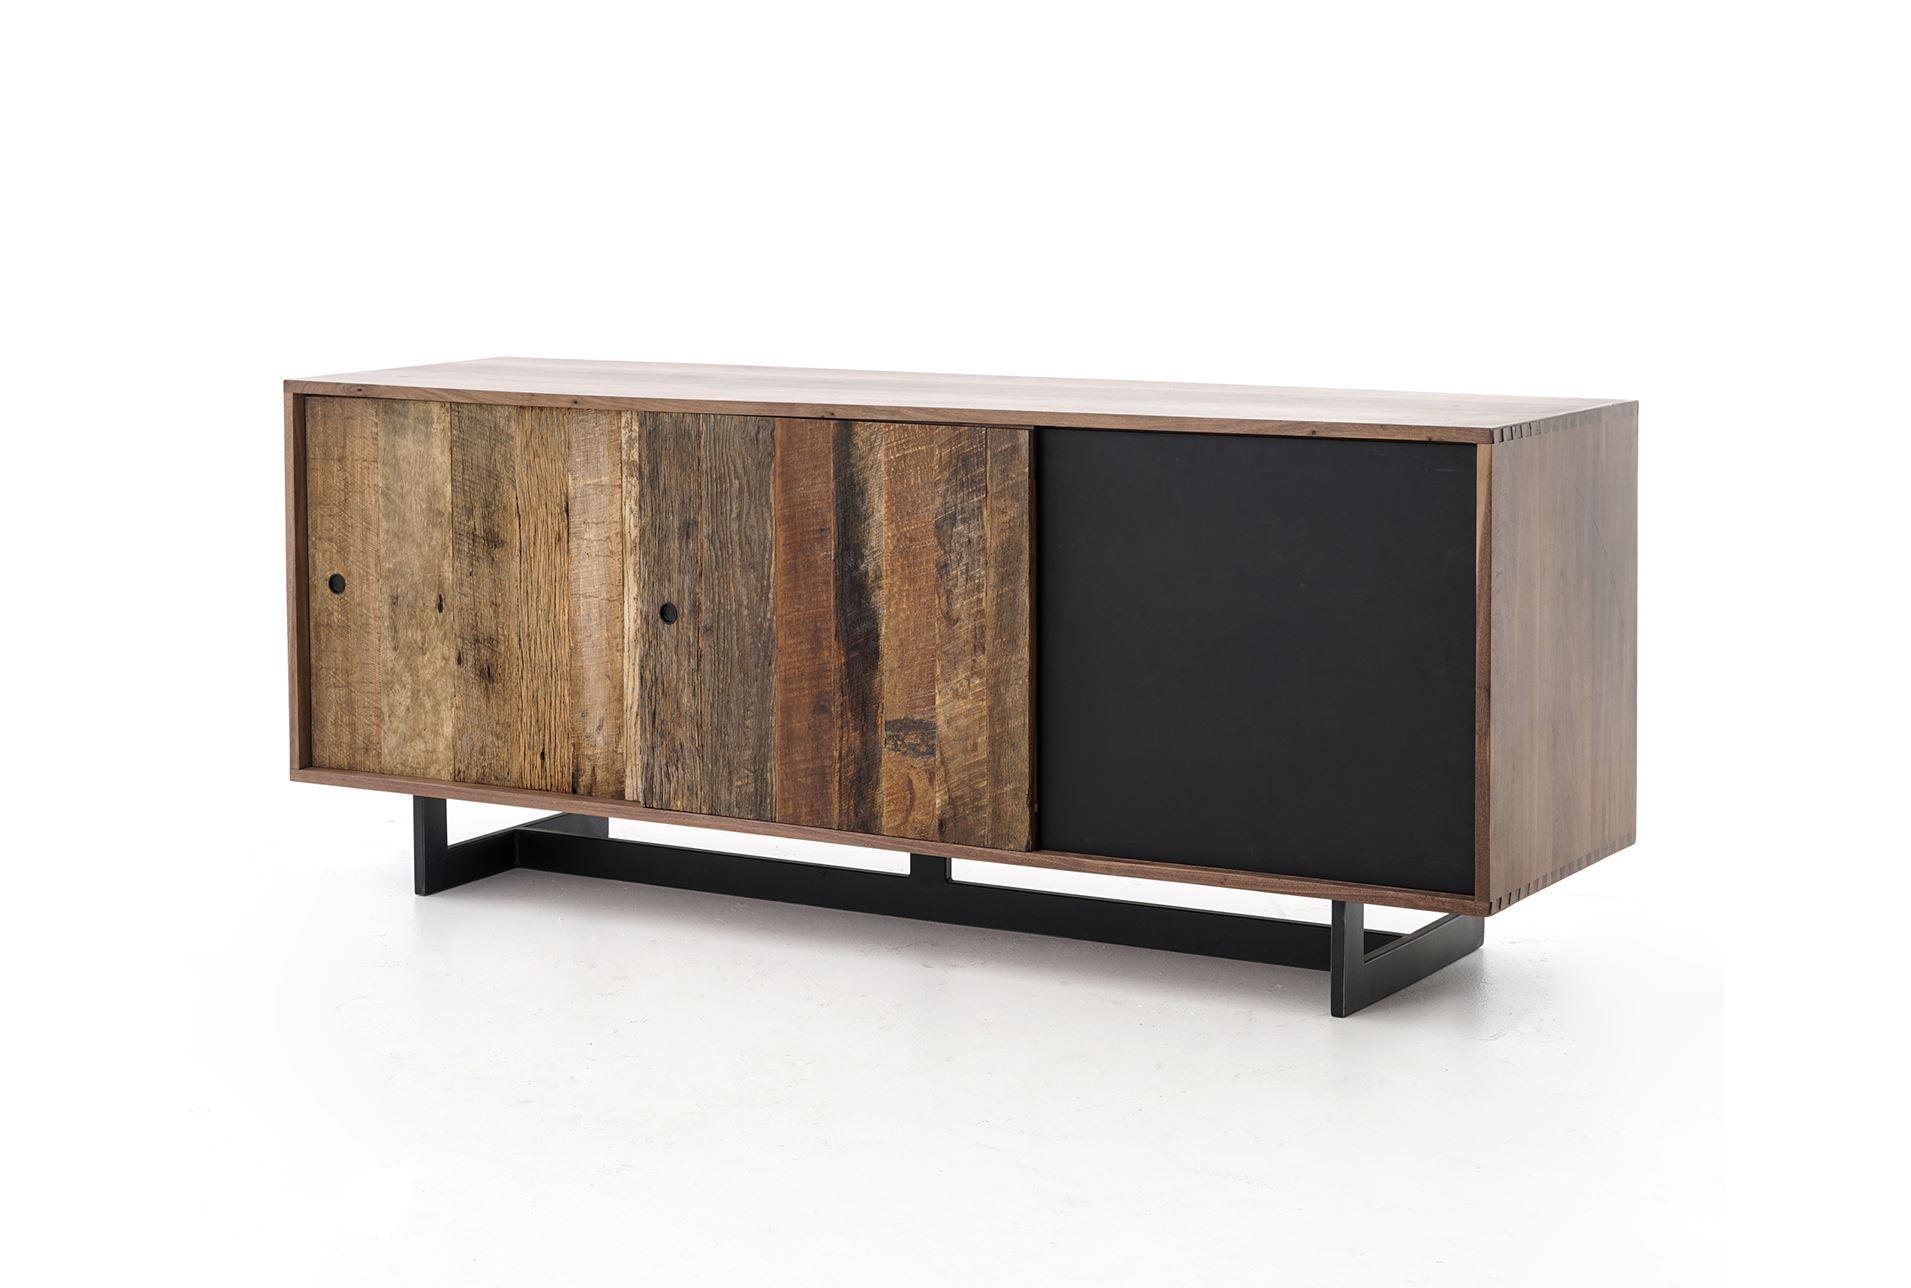 Otb mikelson media console living spaces - Media consoles for small spaces plan ...